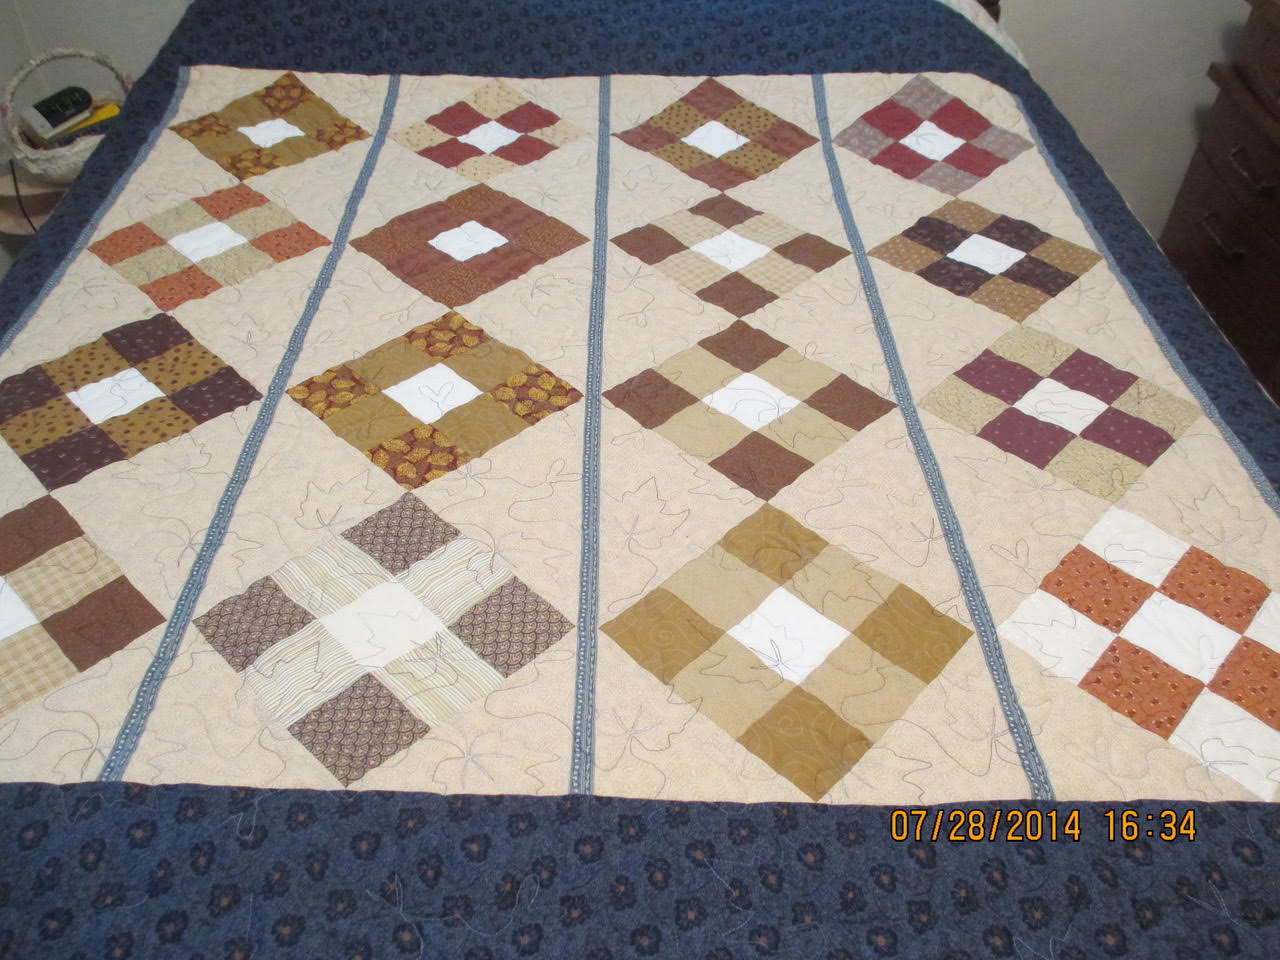 Home of the Brave Quilts - Ohio Chapter - Sewing With Nancy